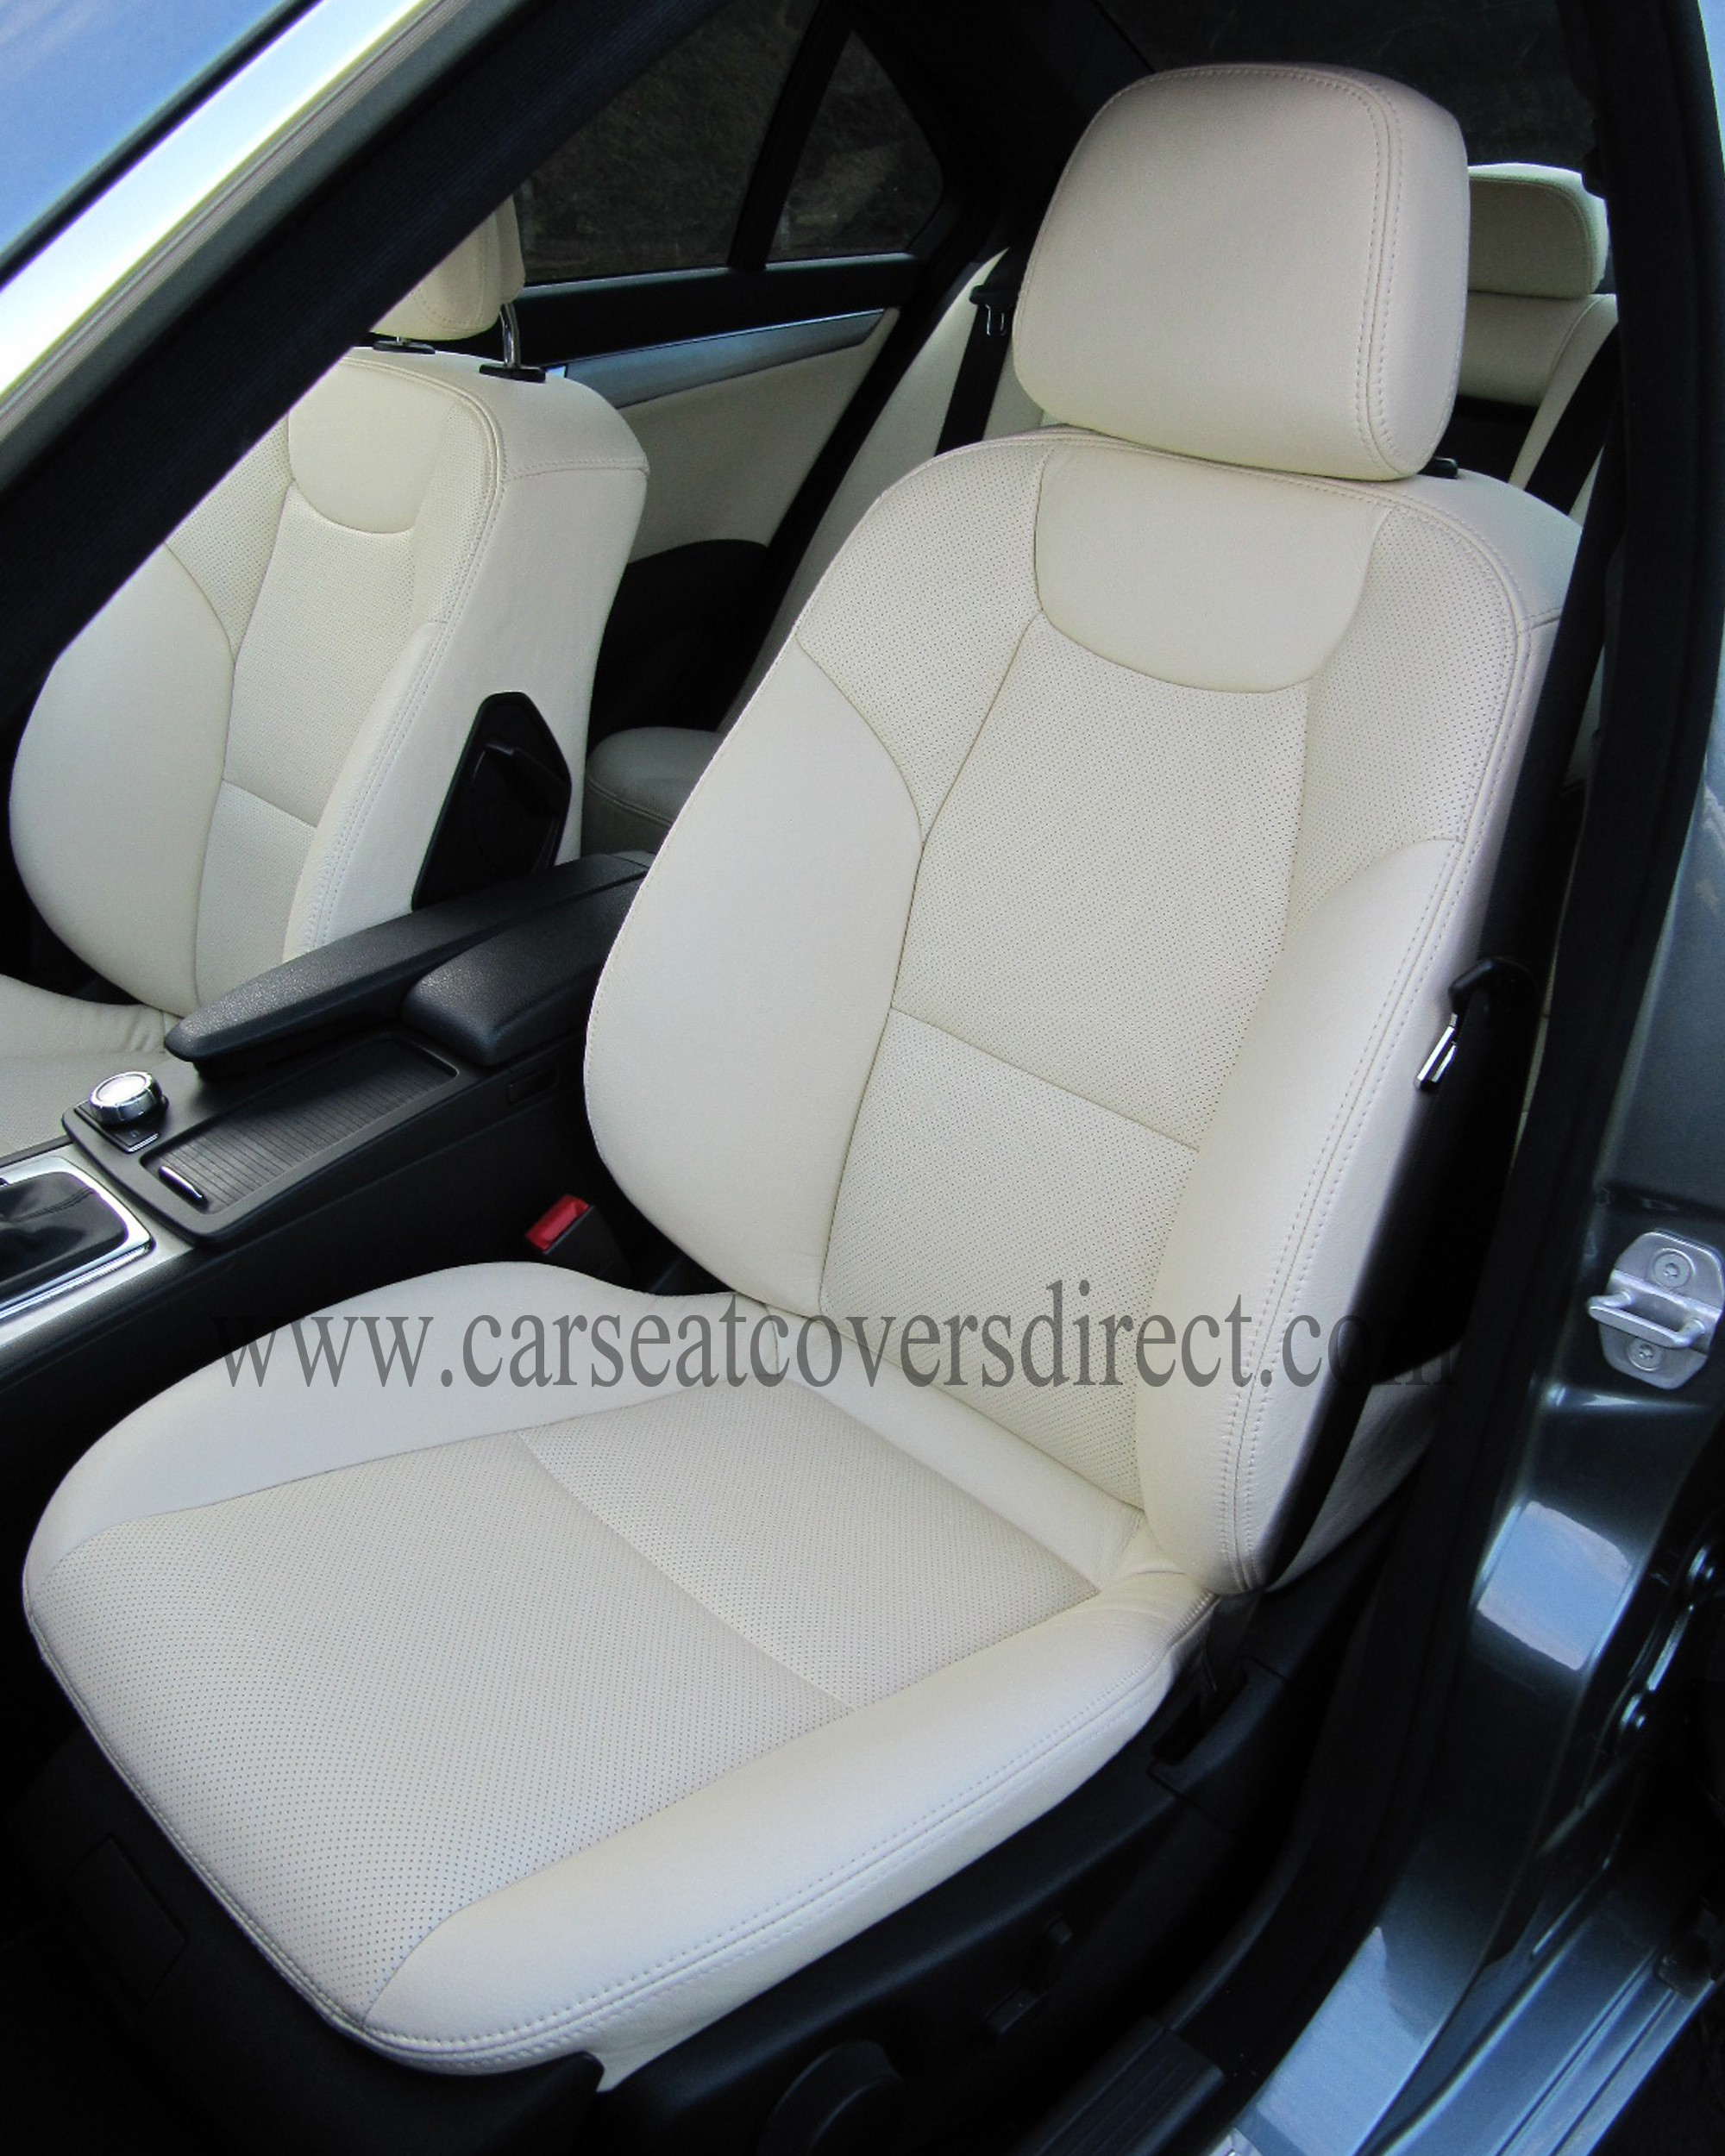 mercedes c class w204 leather retrim car seat covers direct tailored to your choice. Black Bedroom Furniture Sets. Home Design Ideas